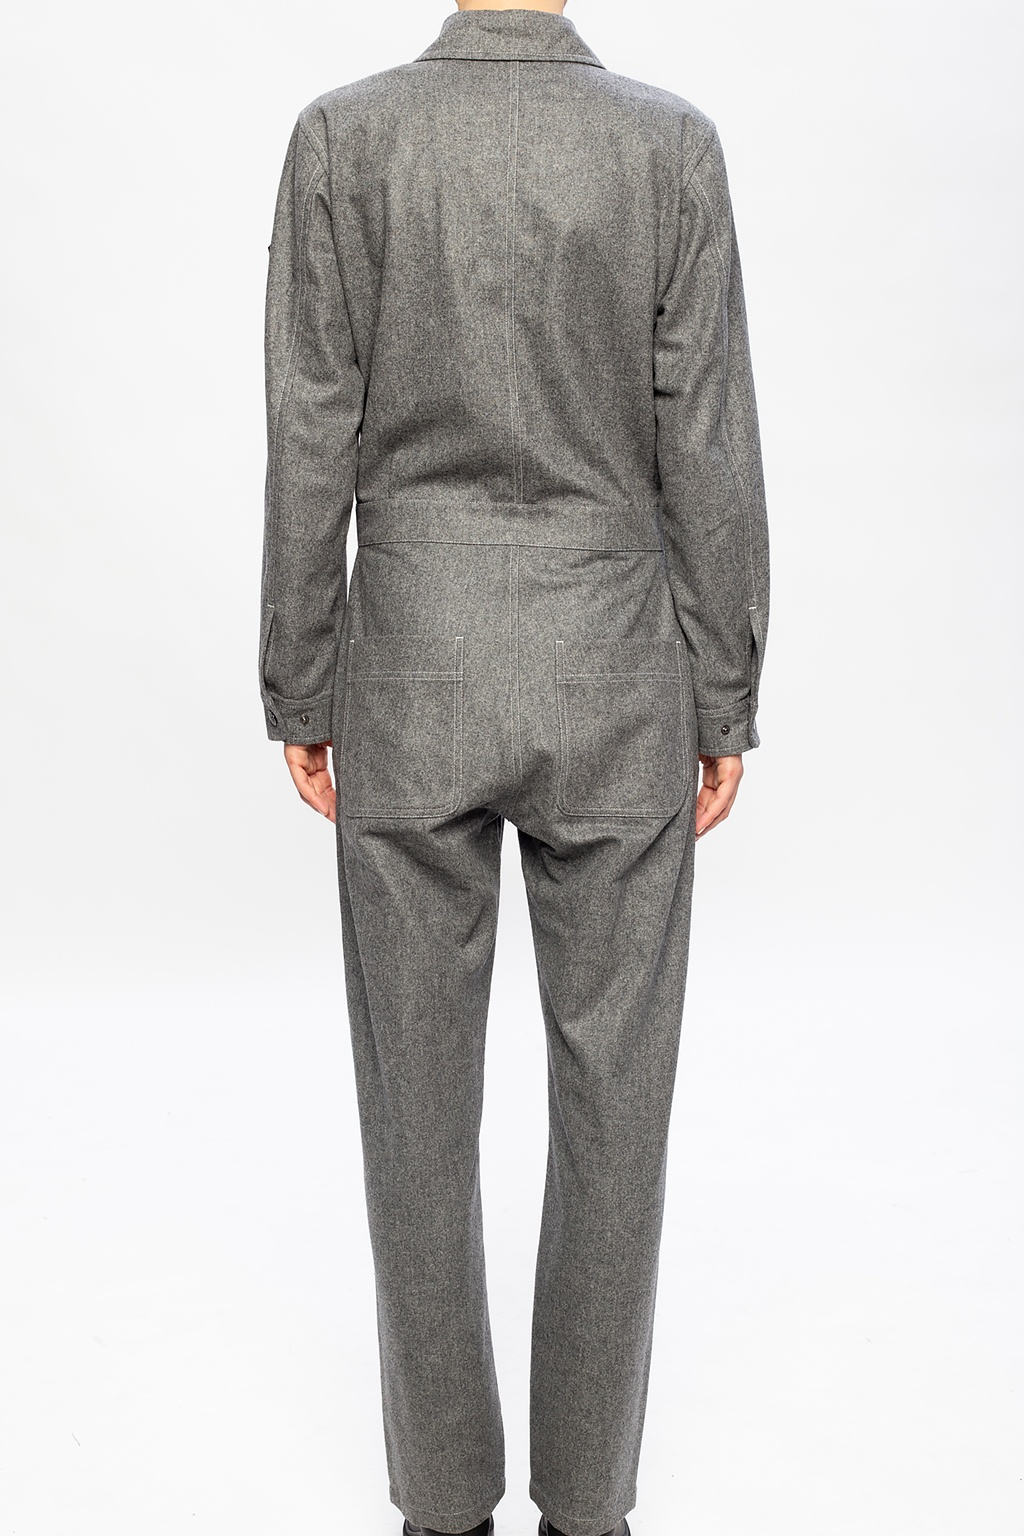 Moncler 'O' Wool jumpsuit with logo